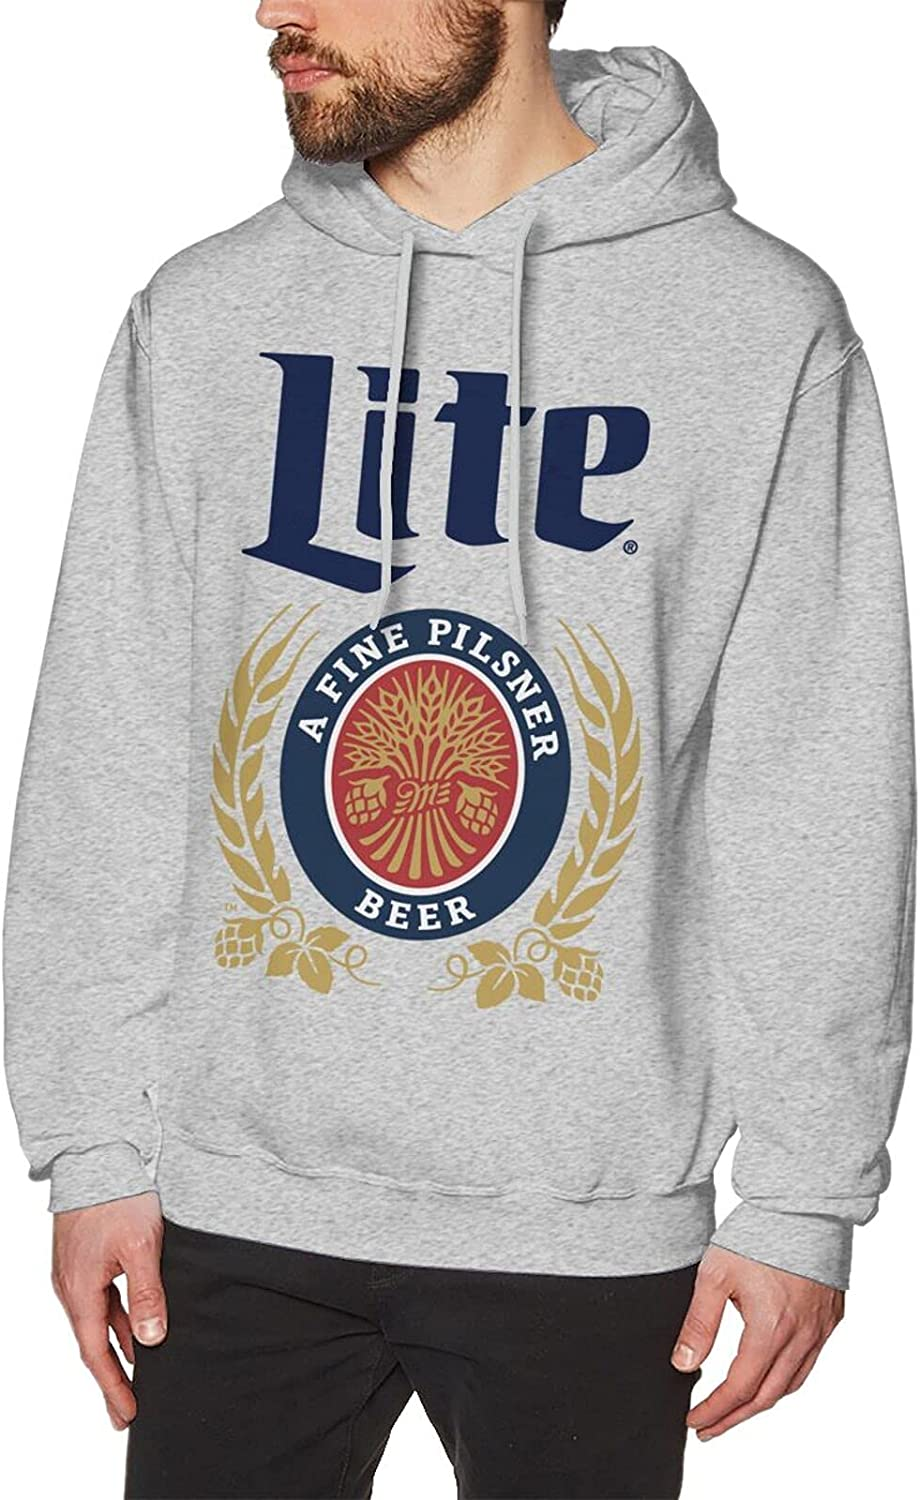 Quantity limited Miller-Lite-Beer Men'S Cotton Hoodie Graphic Pullov Sale SALE% OFF Personalized